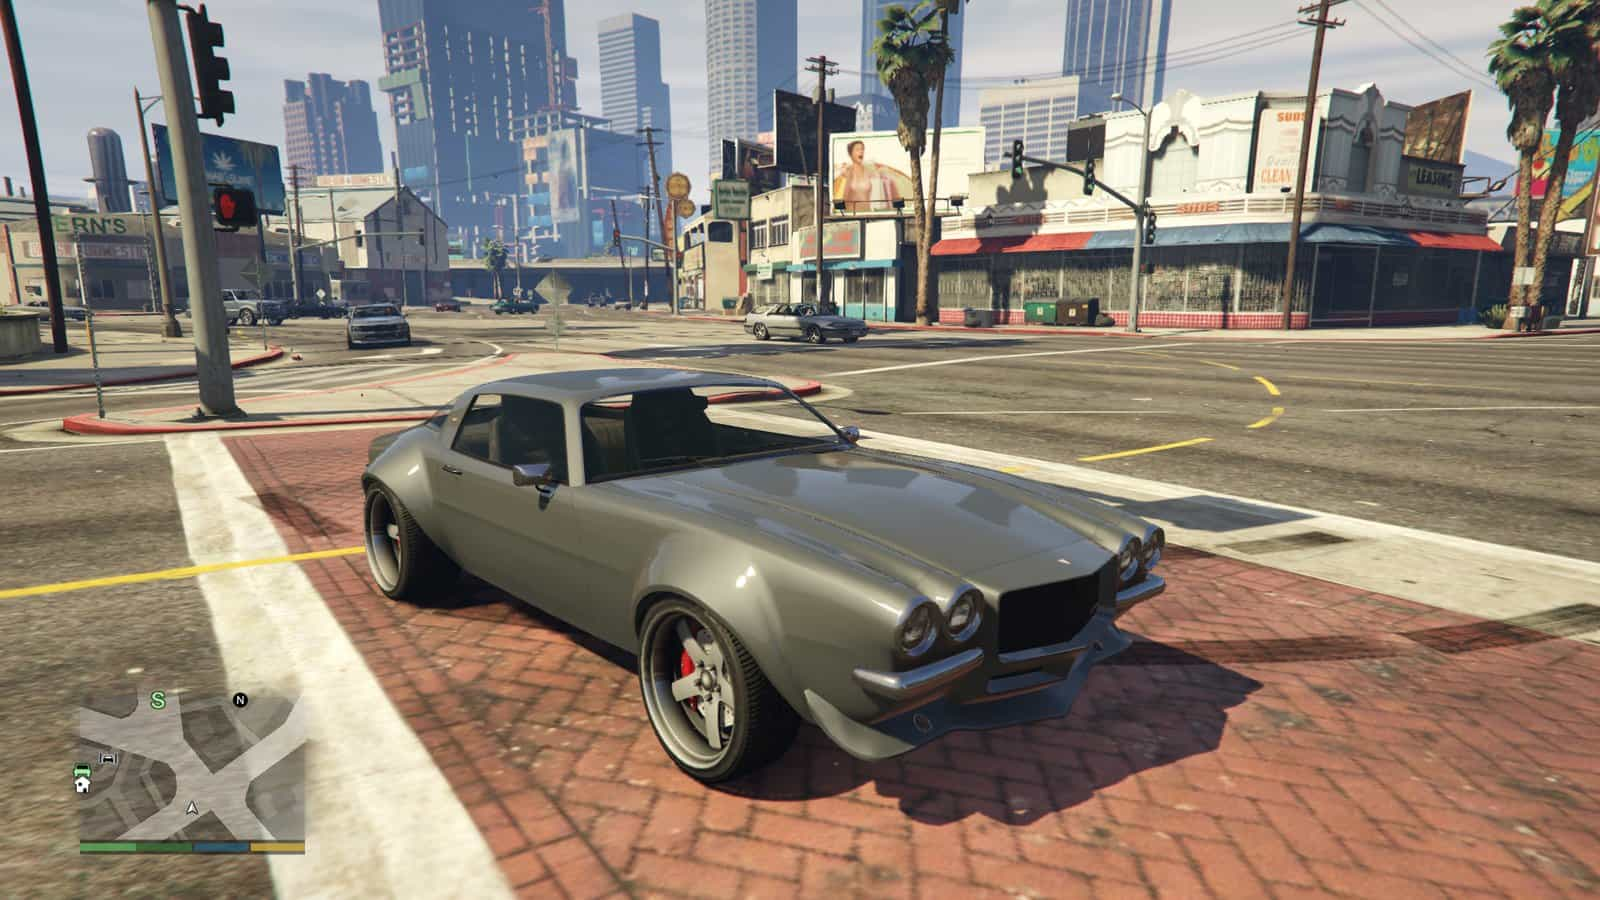 GTA Online Executives DLC Cars Added To Single Player